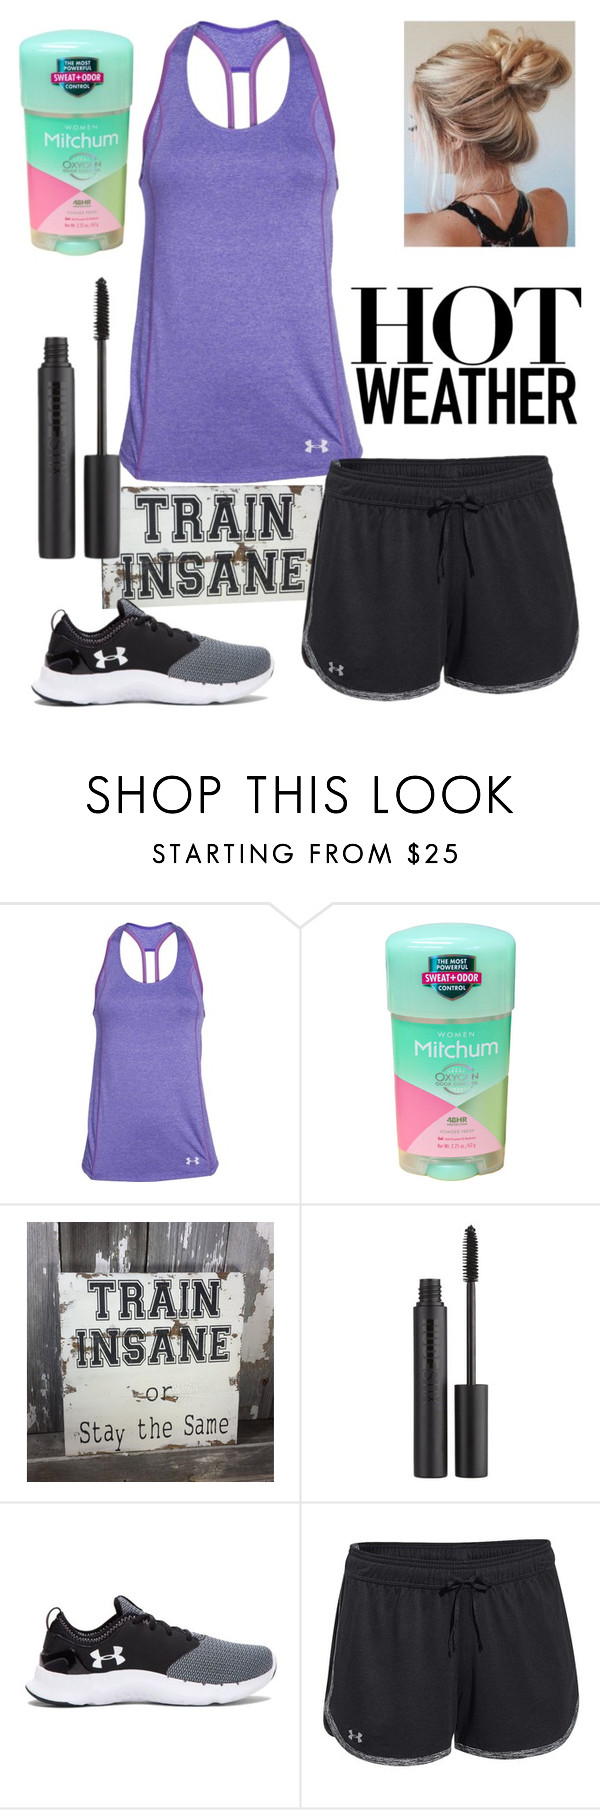 """JROTC Training"" by emmy-awards ❤ liked on Polyvore featuring Under Armour and Nudestix"